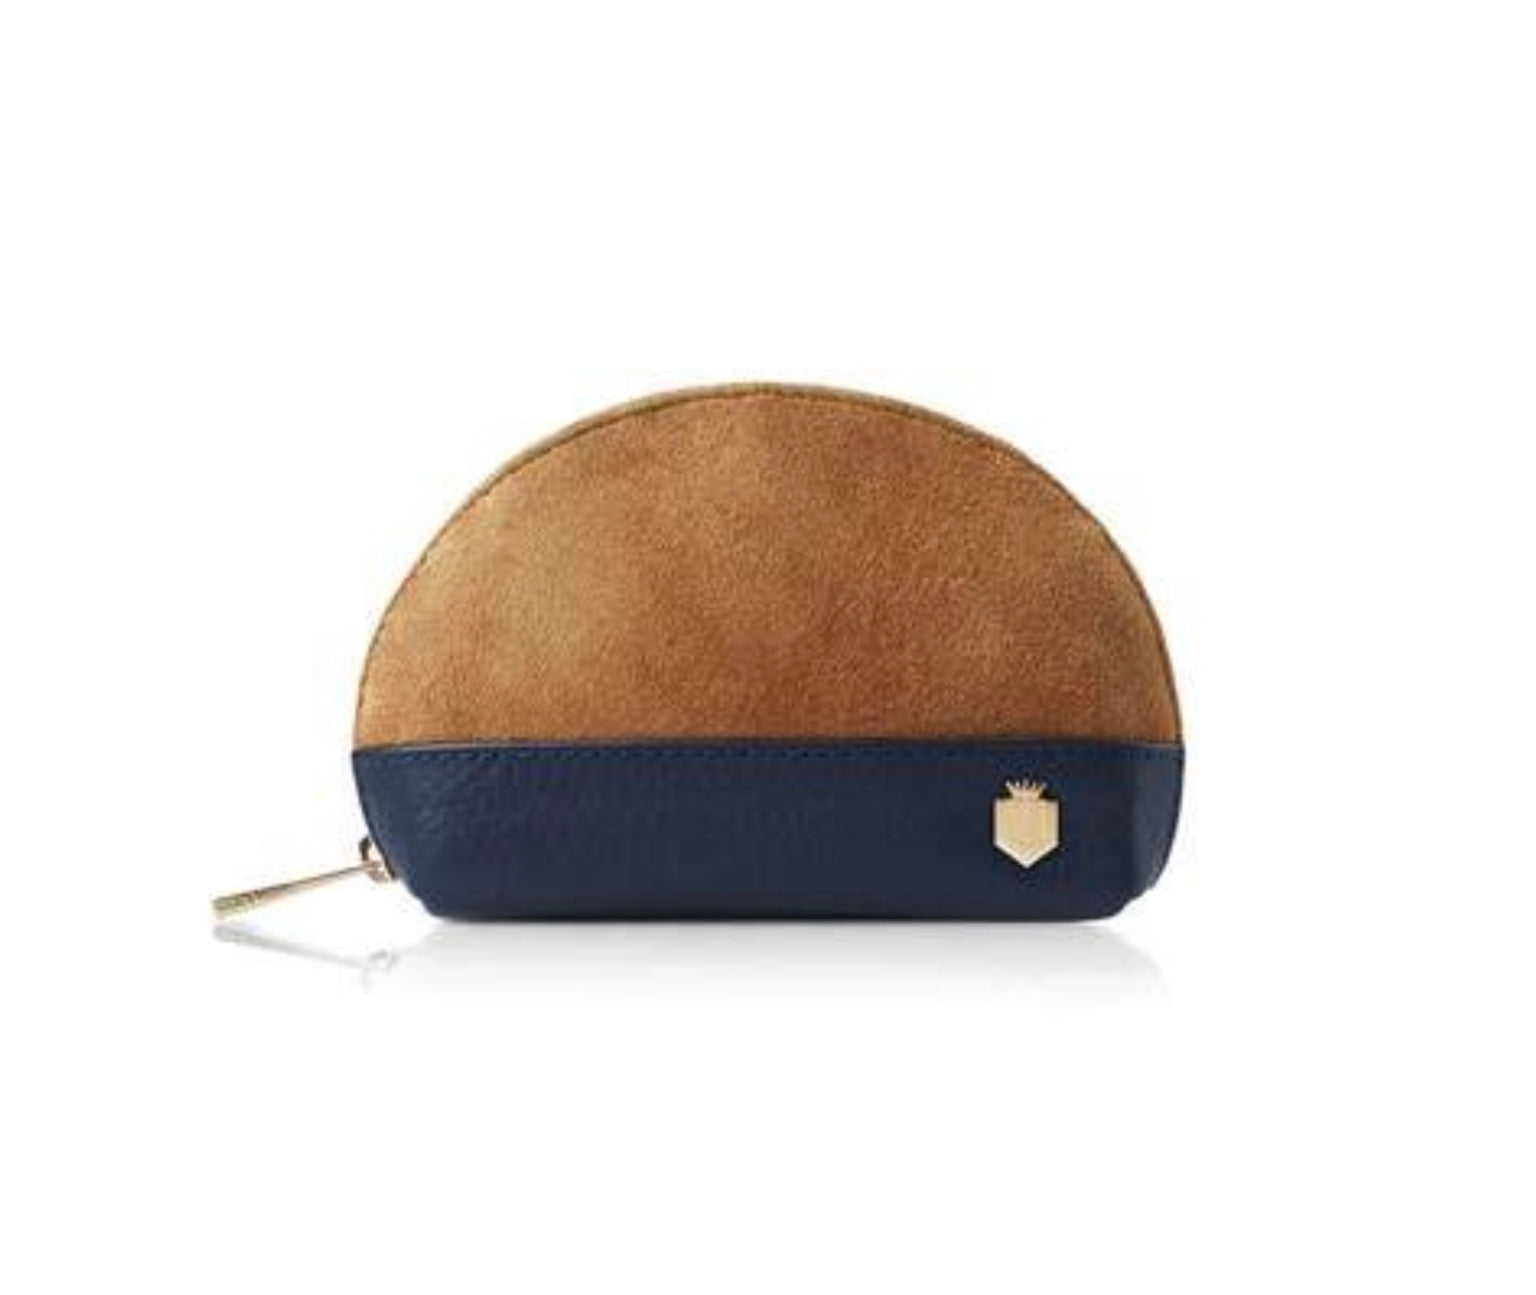 Fairfax & Favor Chatham Coin Purse Navy / Tan